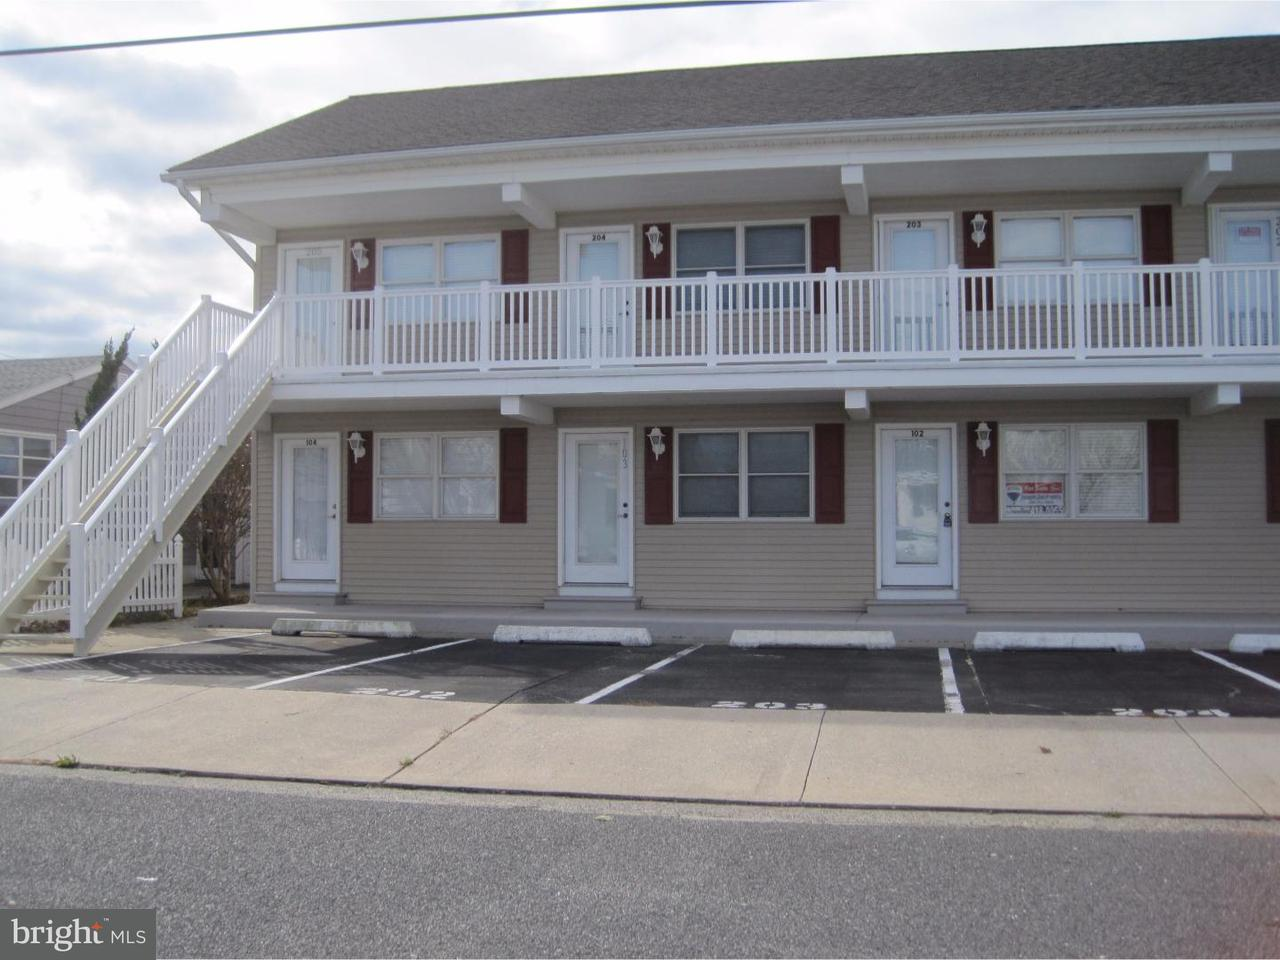 Condominium for Sale at 300 E SYRACUSE AVE #102 Wildwood Crest, New Jersey 08260 United States